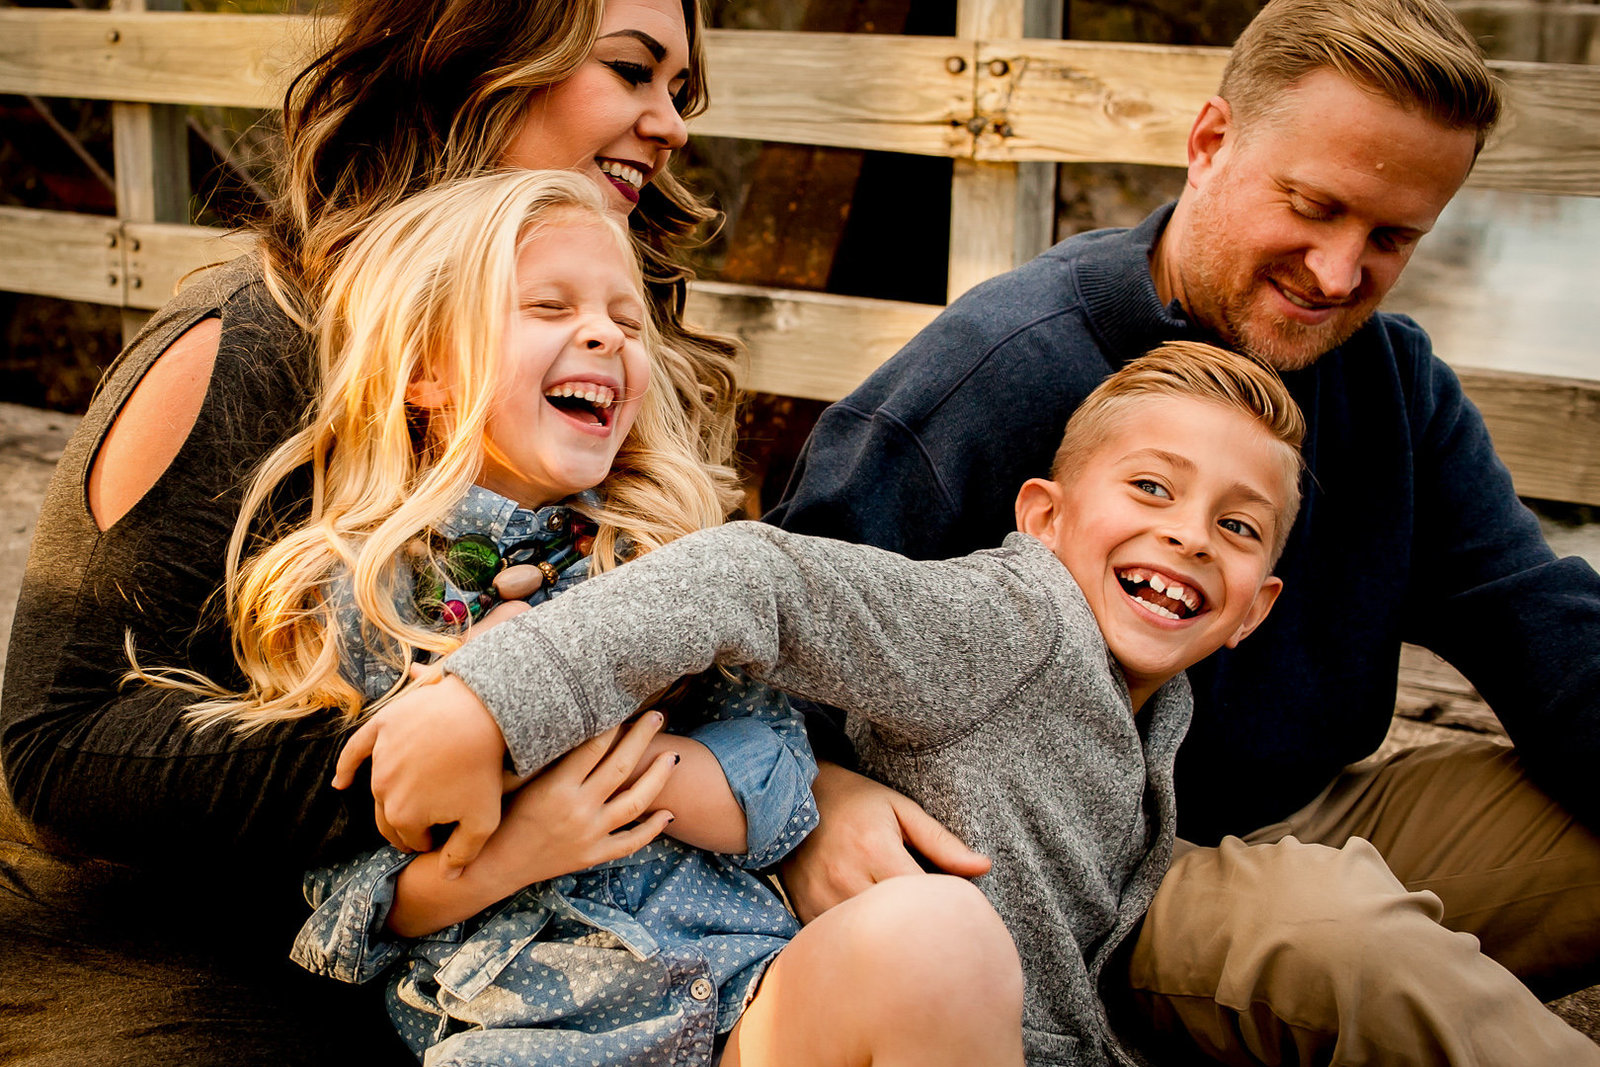 Des Moines Iowa lifestyle family photography of family laughing together.